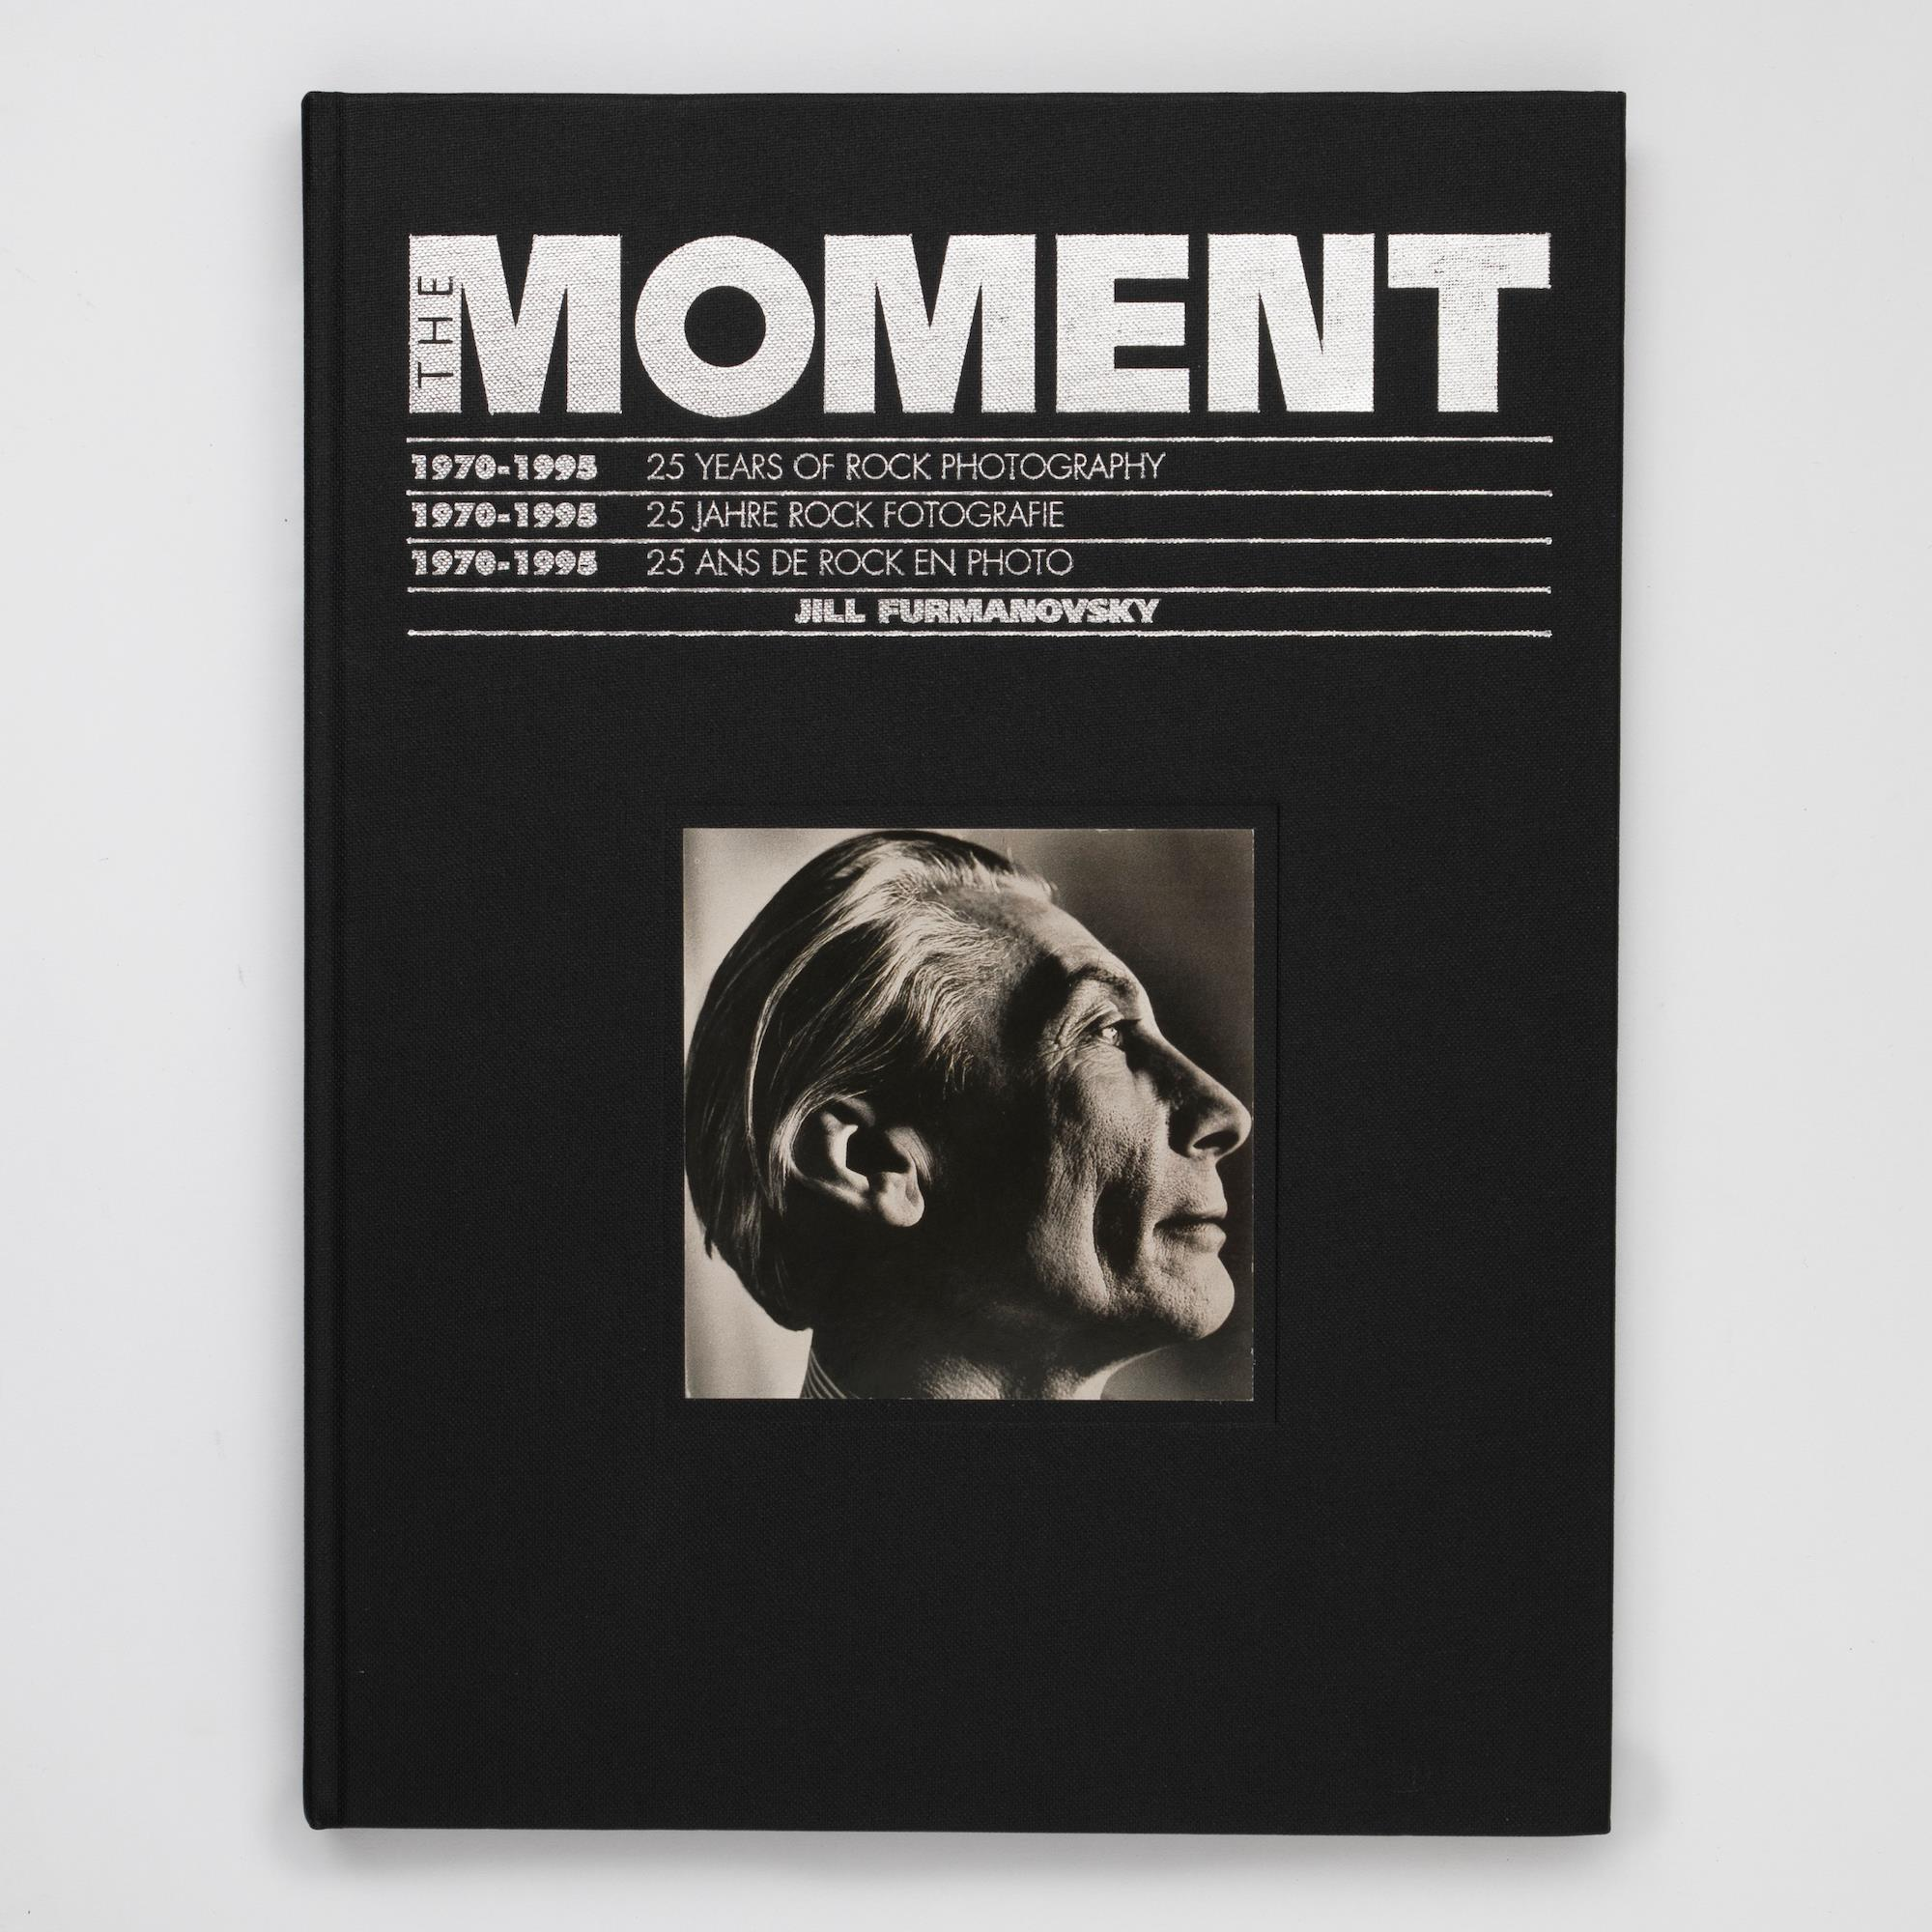 The Moment by Jill Furmanovsky